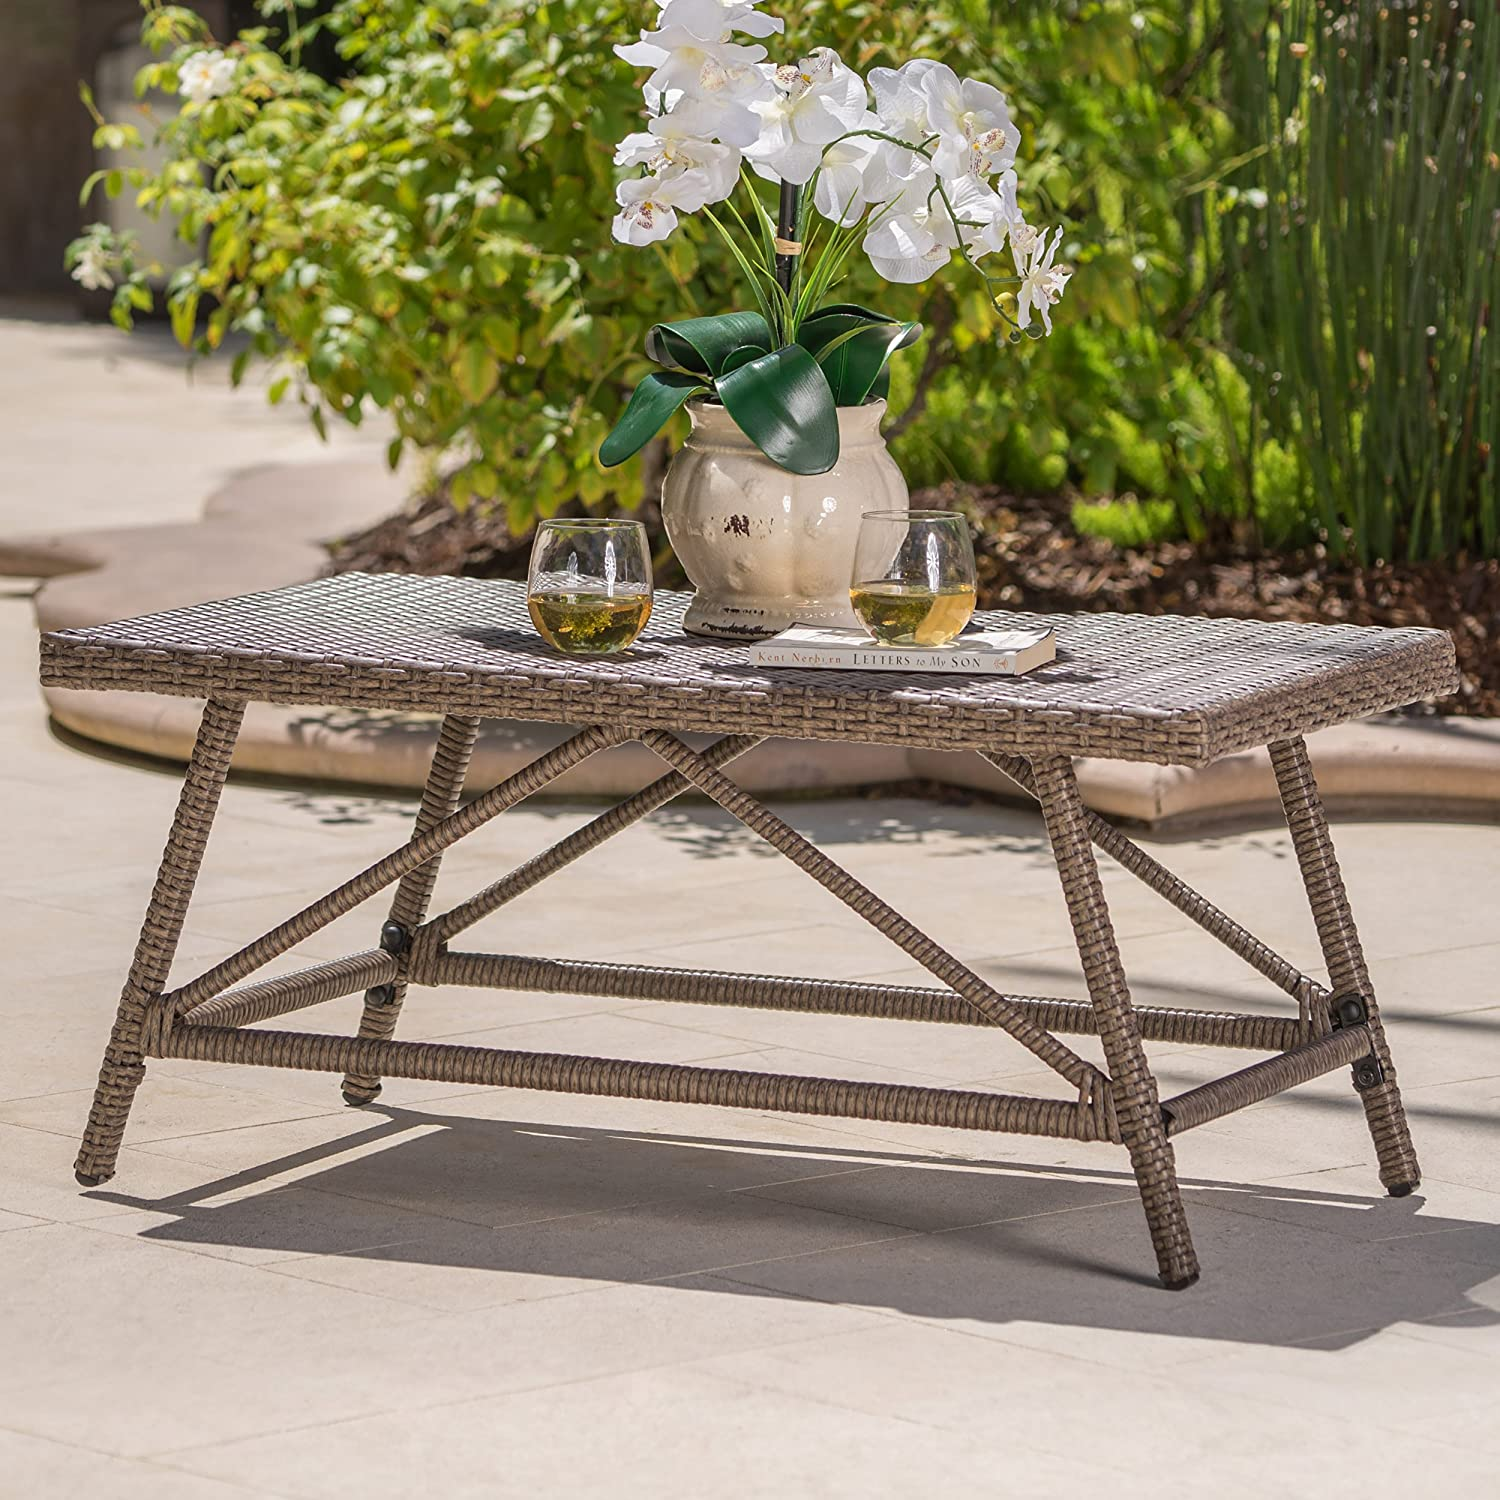 Christopher Knight Home 301836 Hazel Outdoor Light Brown Wicker Coffee Table